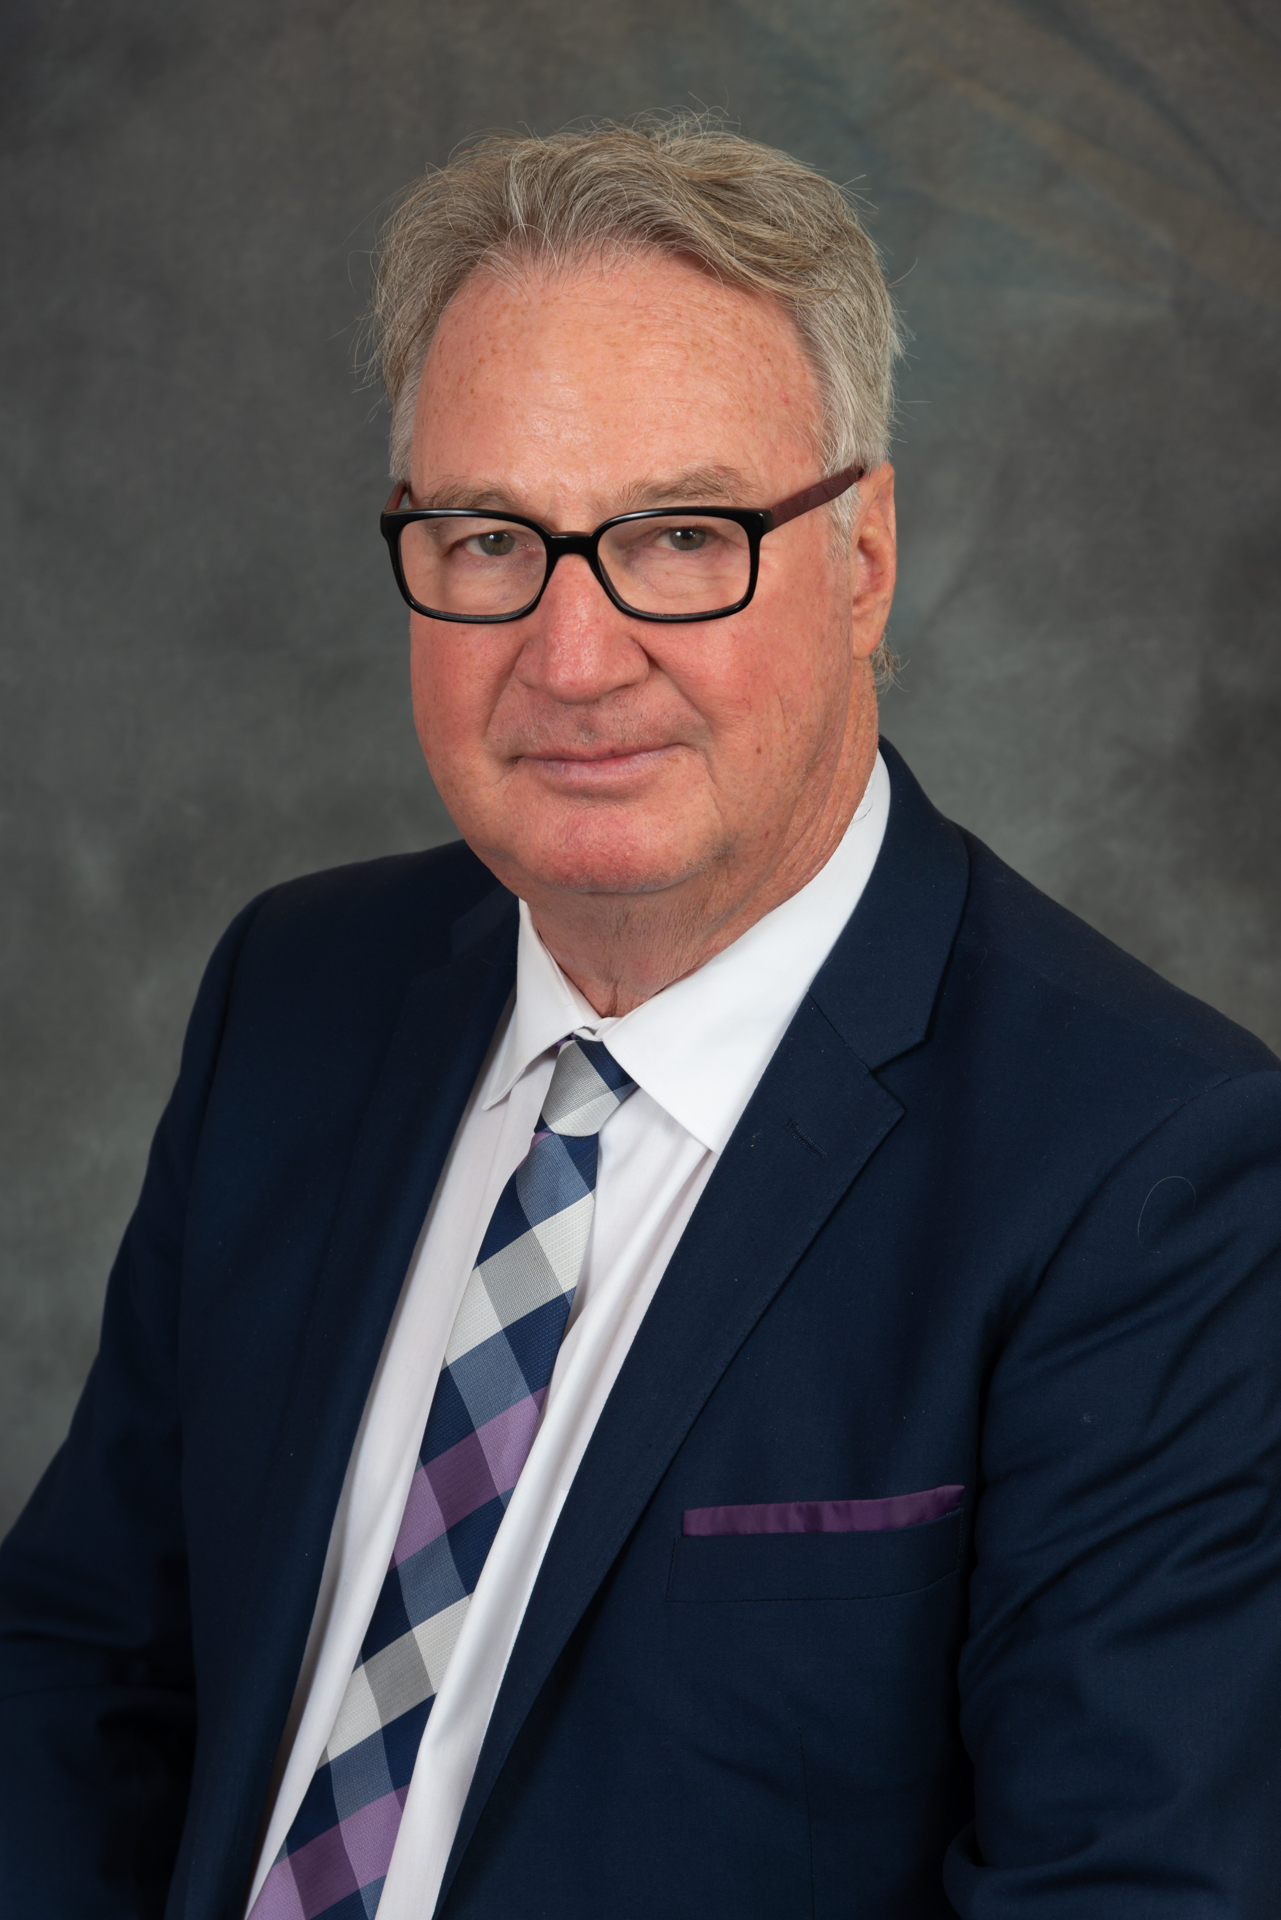 Image of Councillor McLean